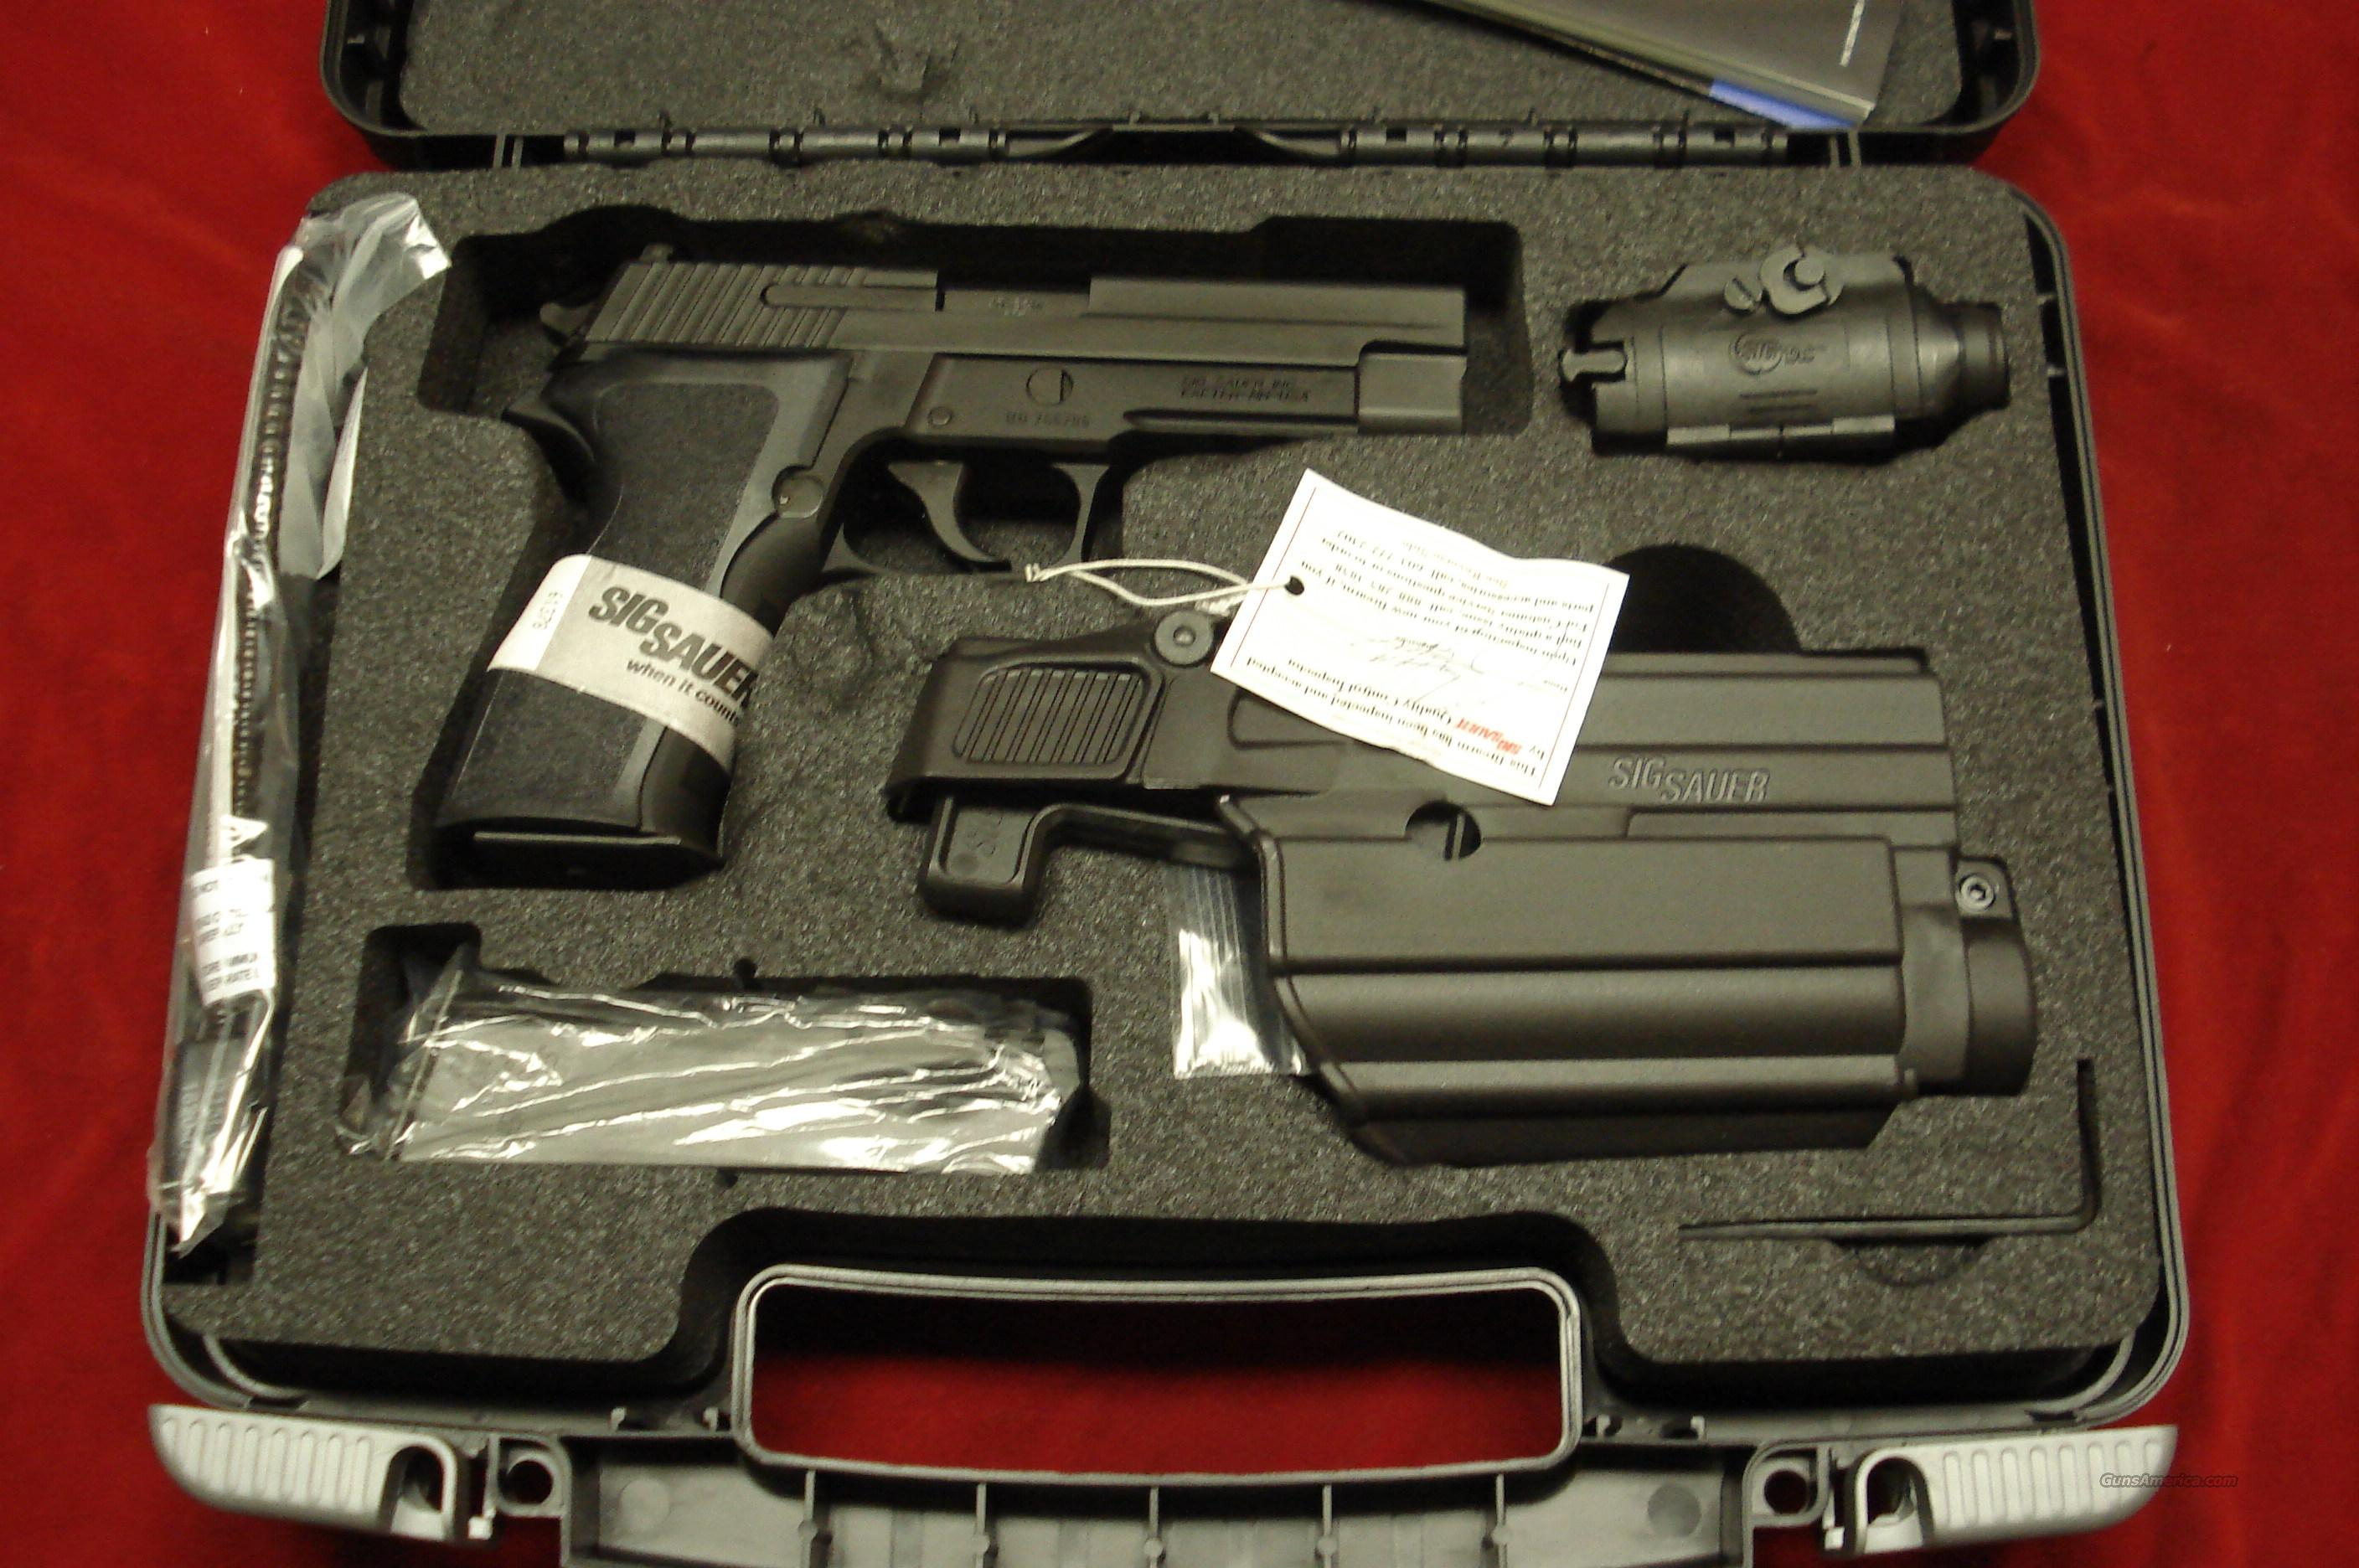 sig sauer p226 40 cal tac pac with night sight for sale